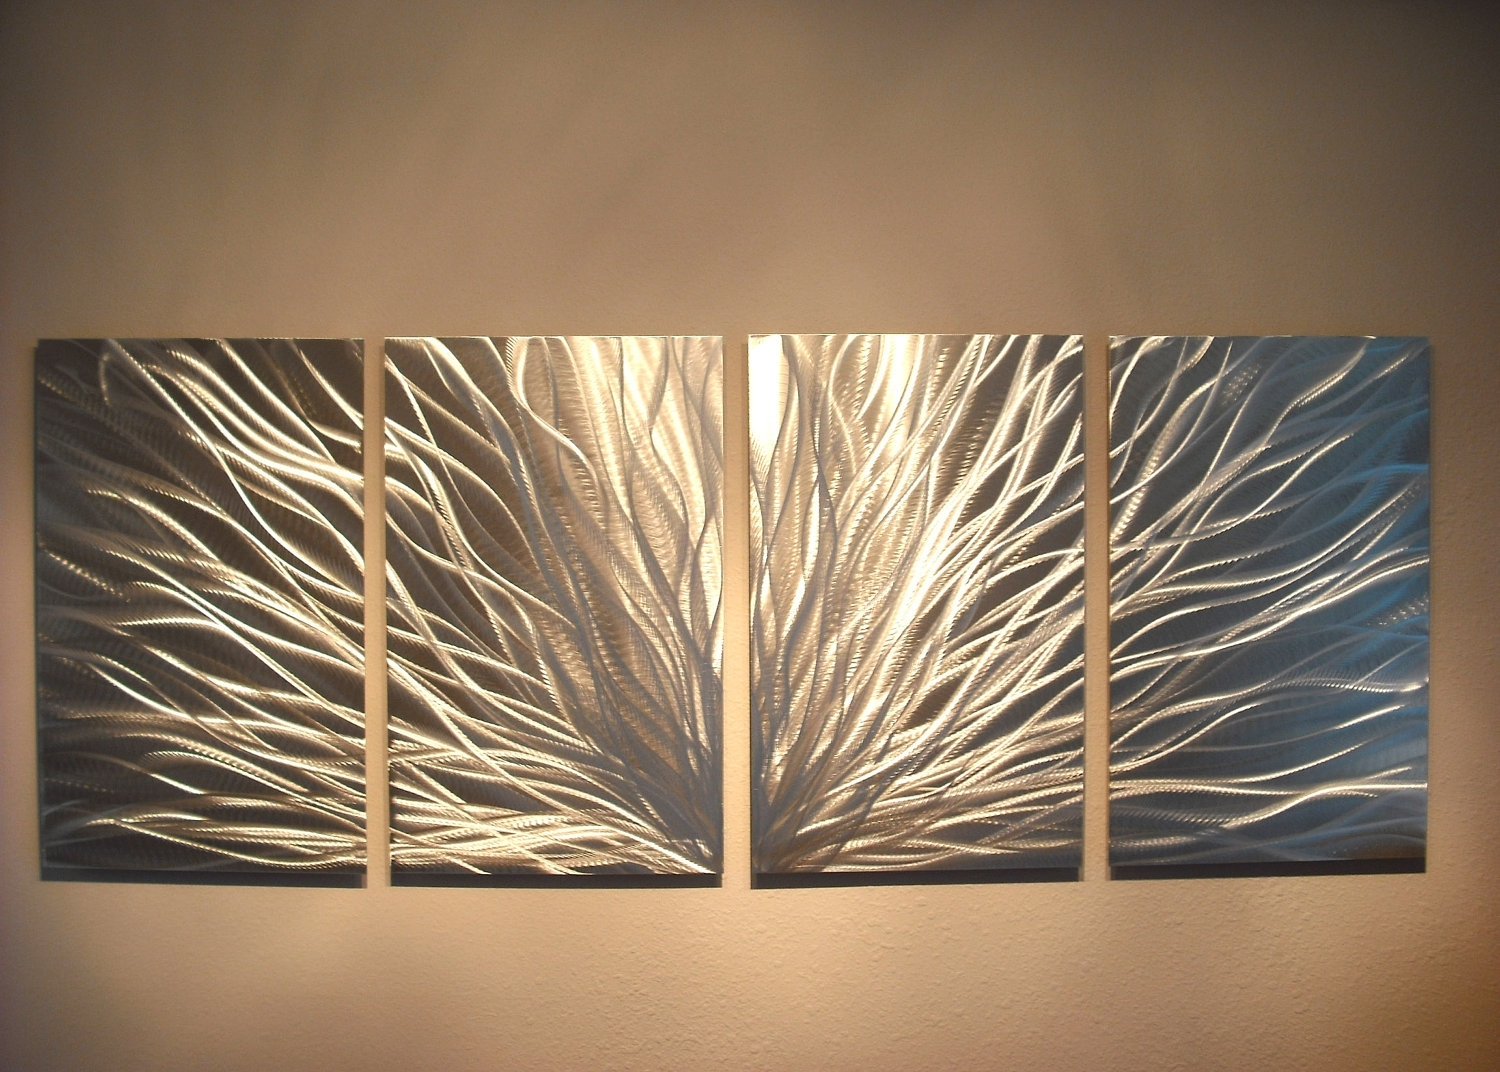 Radiance – Abstract Metal Wall Art Contemporary Modern Decor Inside Most Popular Abstract Art Wall Hangings (Gallery 6 of 20)